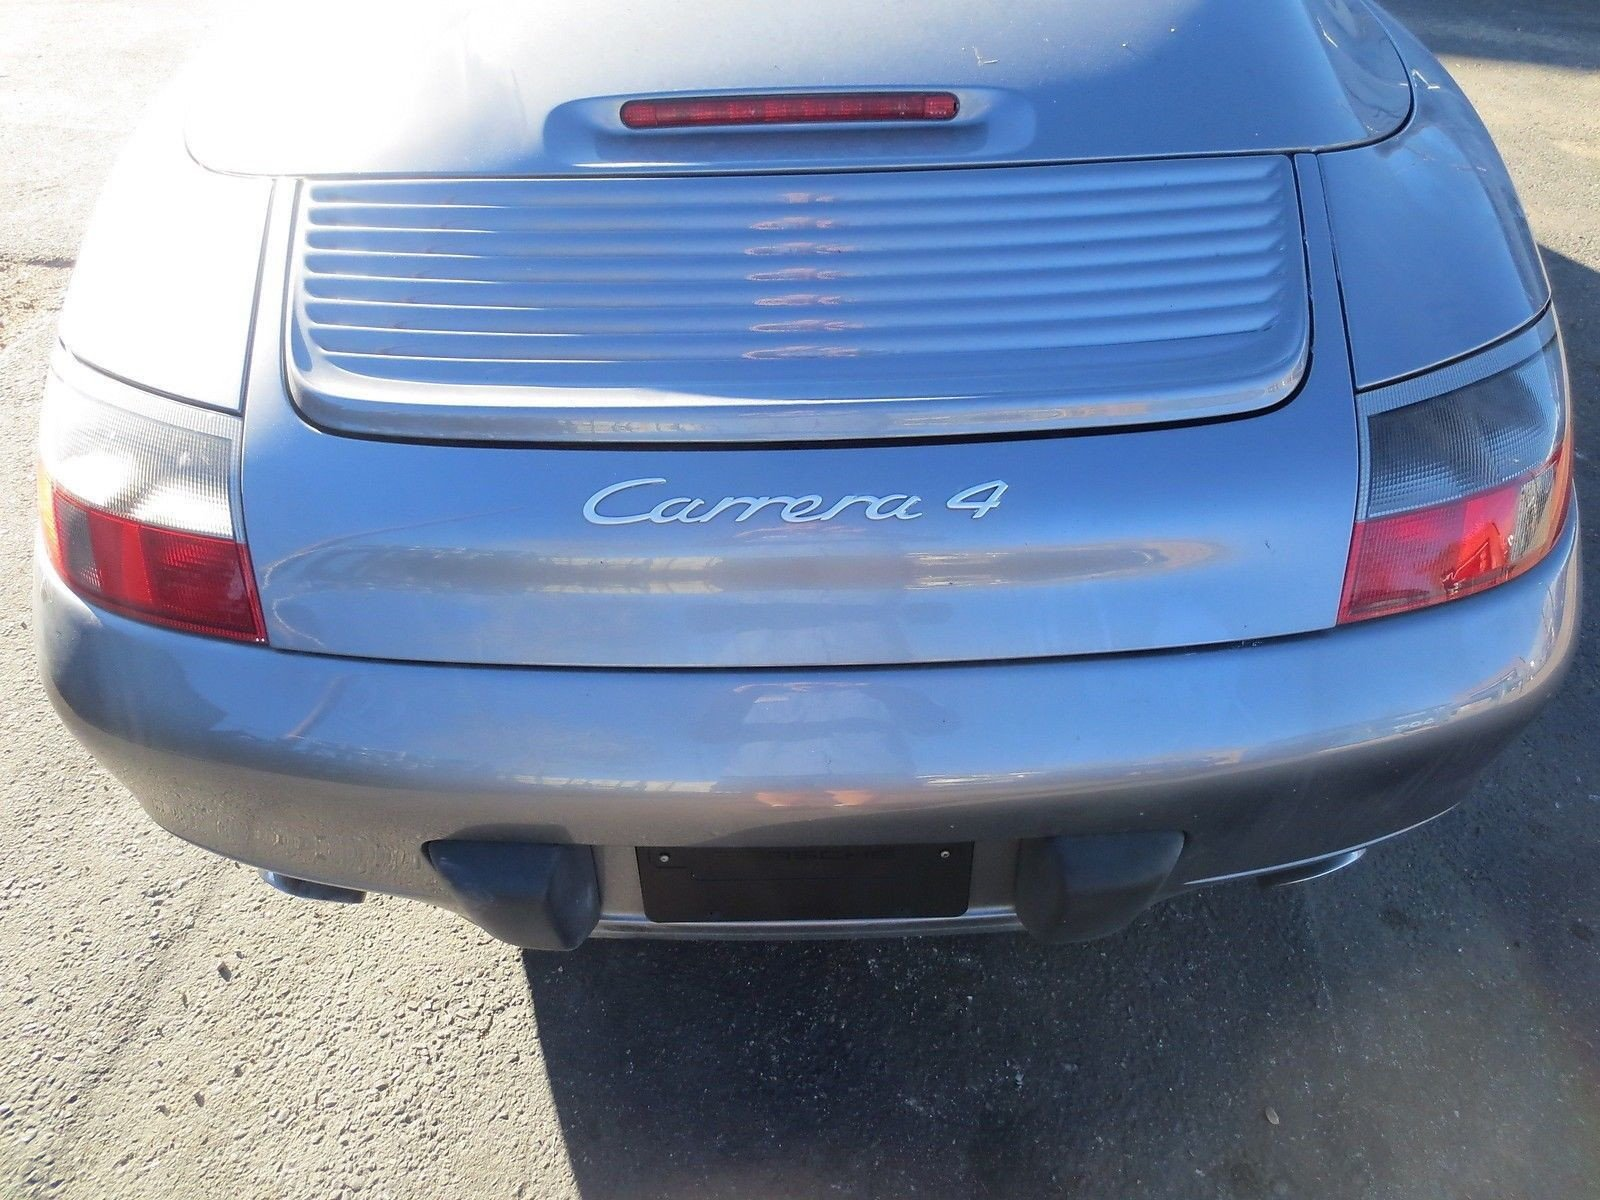 01 Porsche C4 AWD 911 Carrera 4 Convertible 996 Parting Out car parts par 43,431